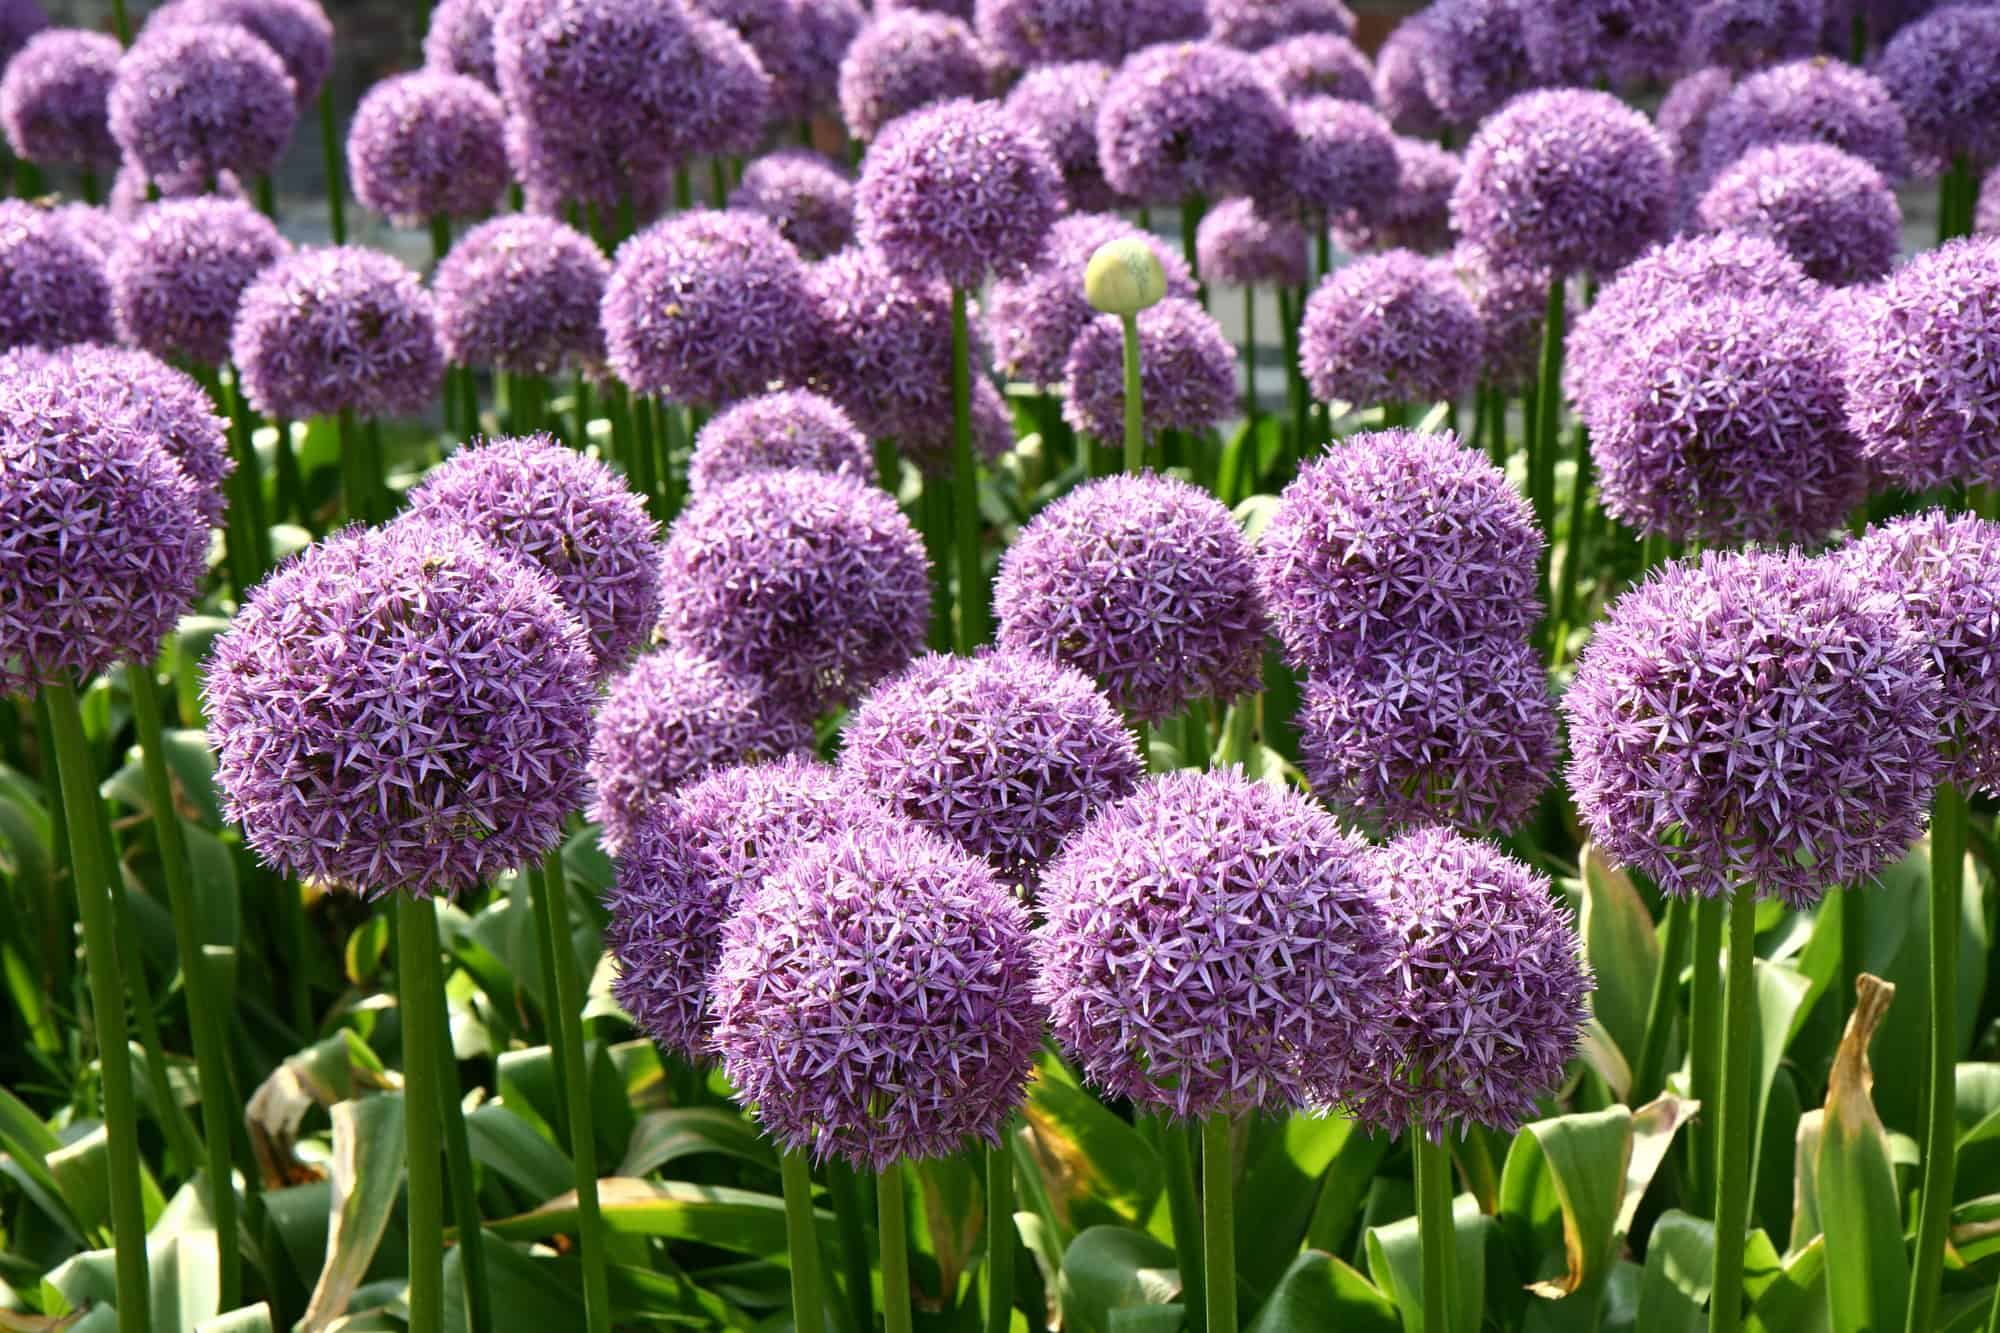 purple flowers from onions